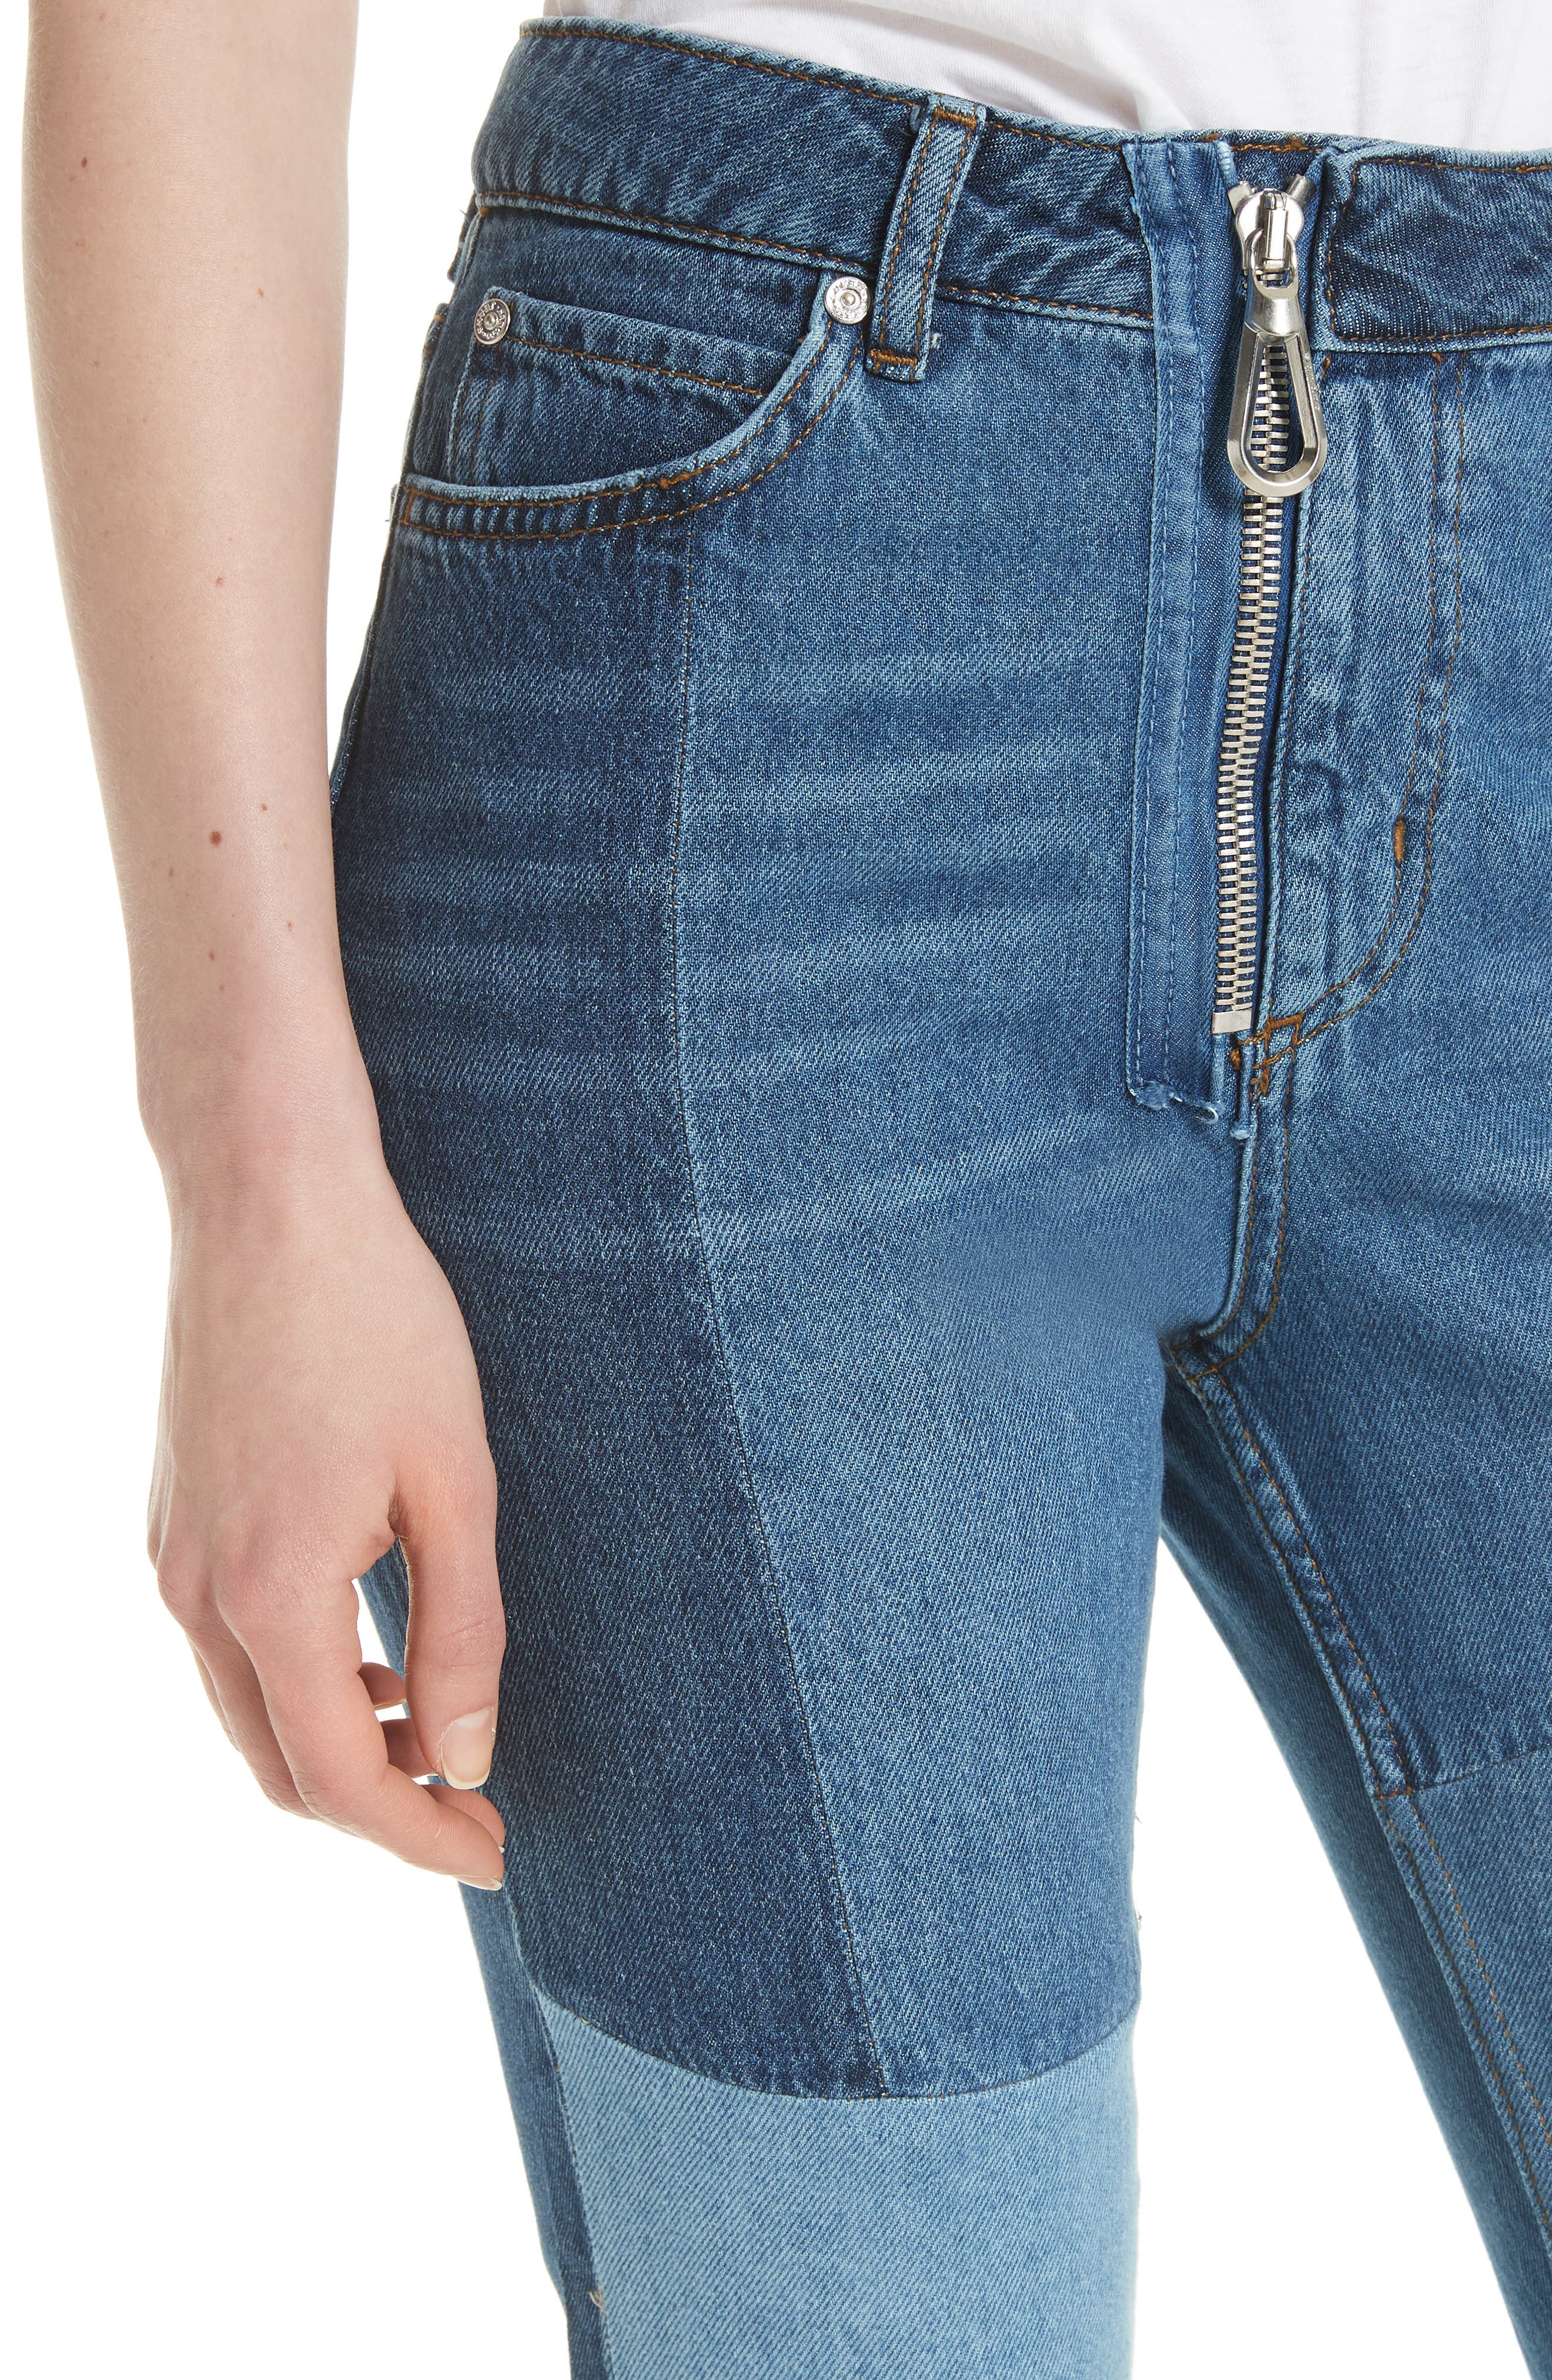 Patch Skinny Jeans,                             Alternate thumbnail 4, color,                             Blue